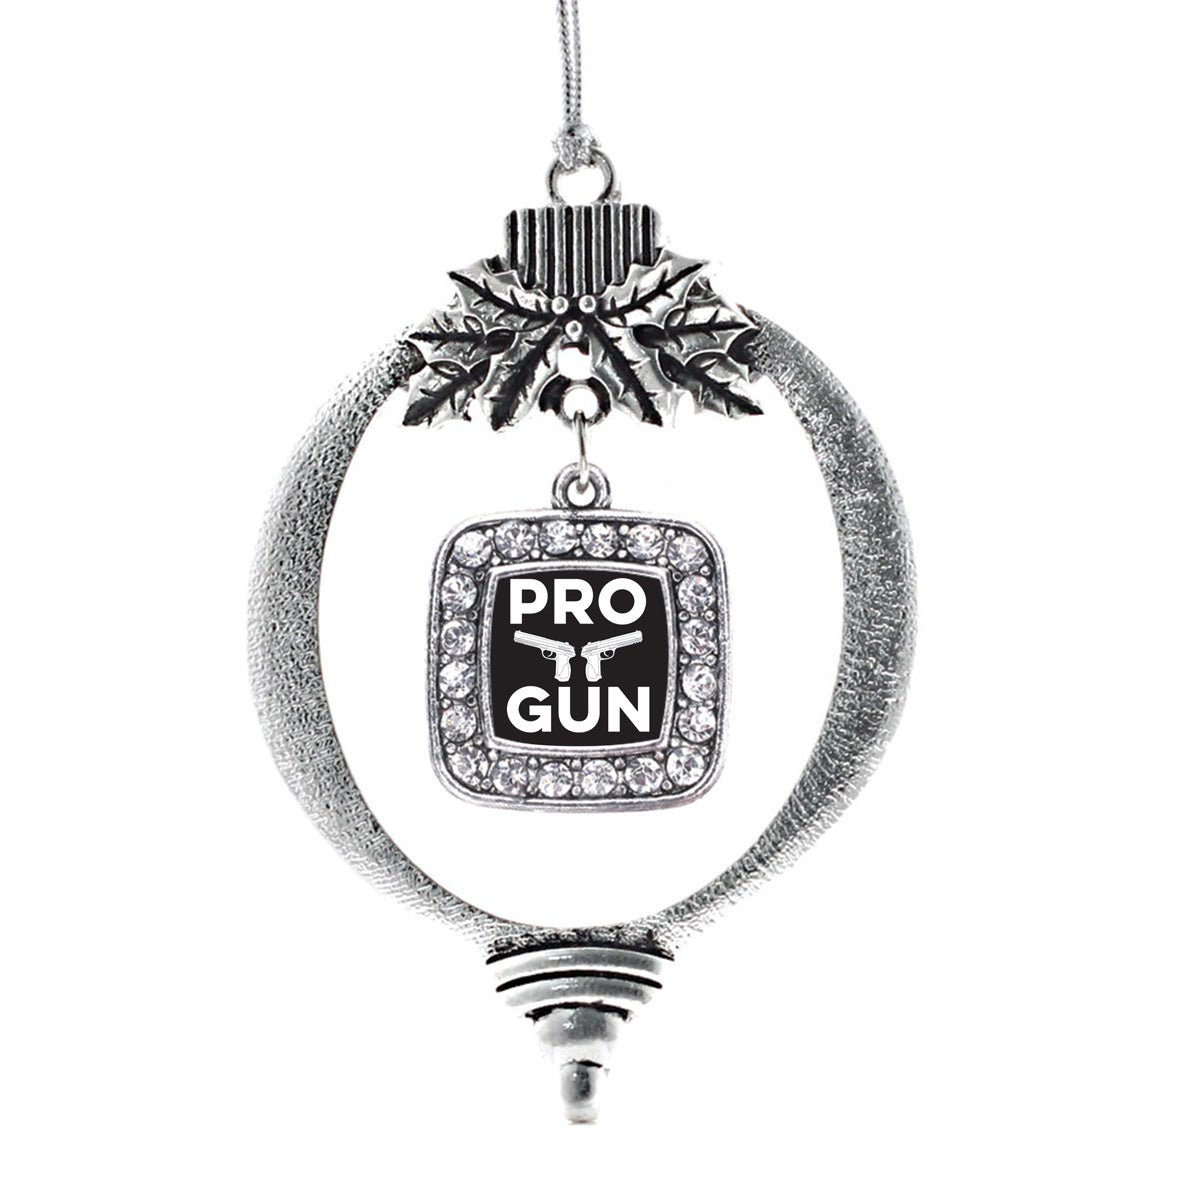 Pro Gun Square Charm Christmas / Holiday Ornament